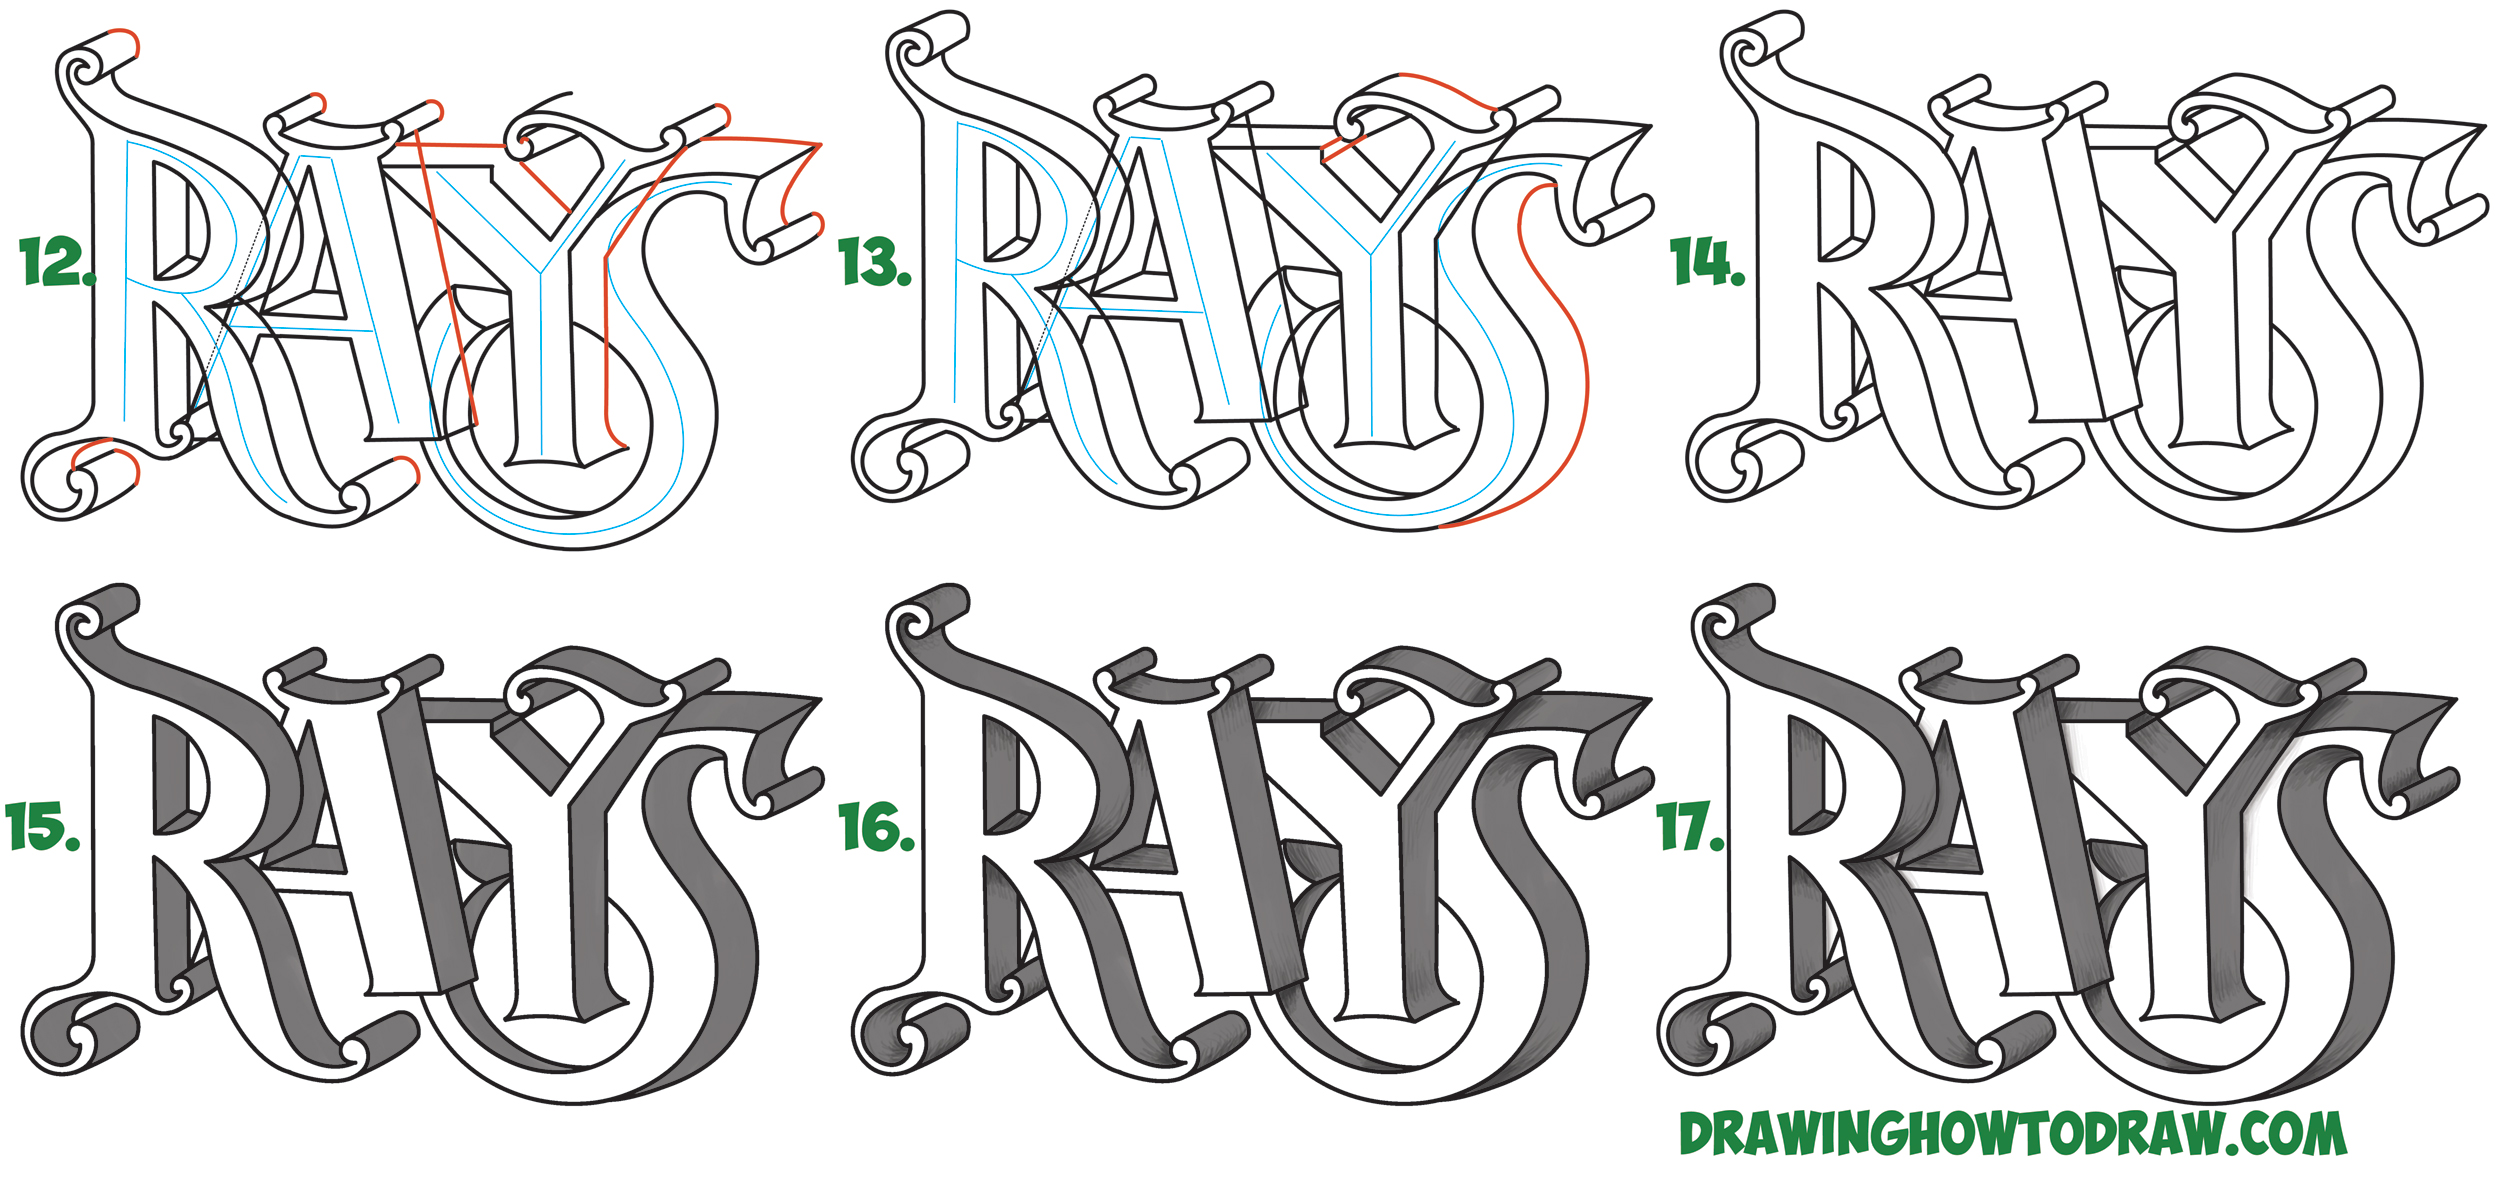 Learn How to Draw 3D Fancy Curvy Letters Simple Steps Drawing Lesson for Children & Beginners